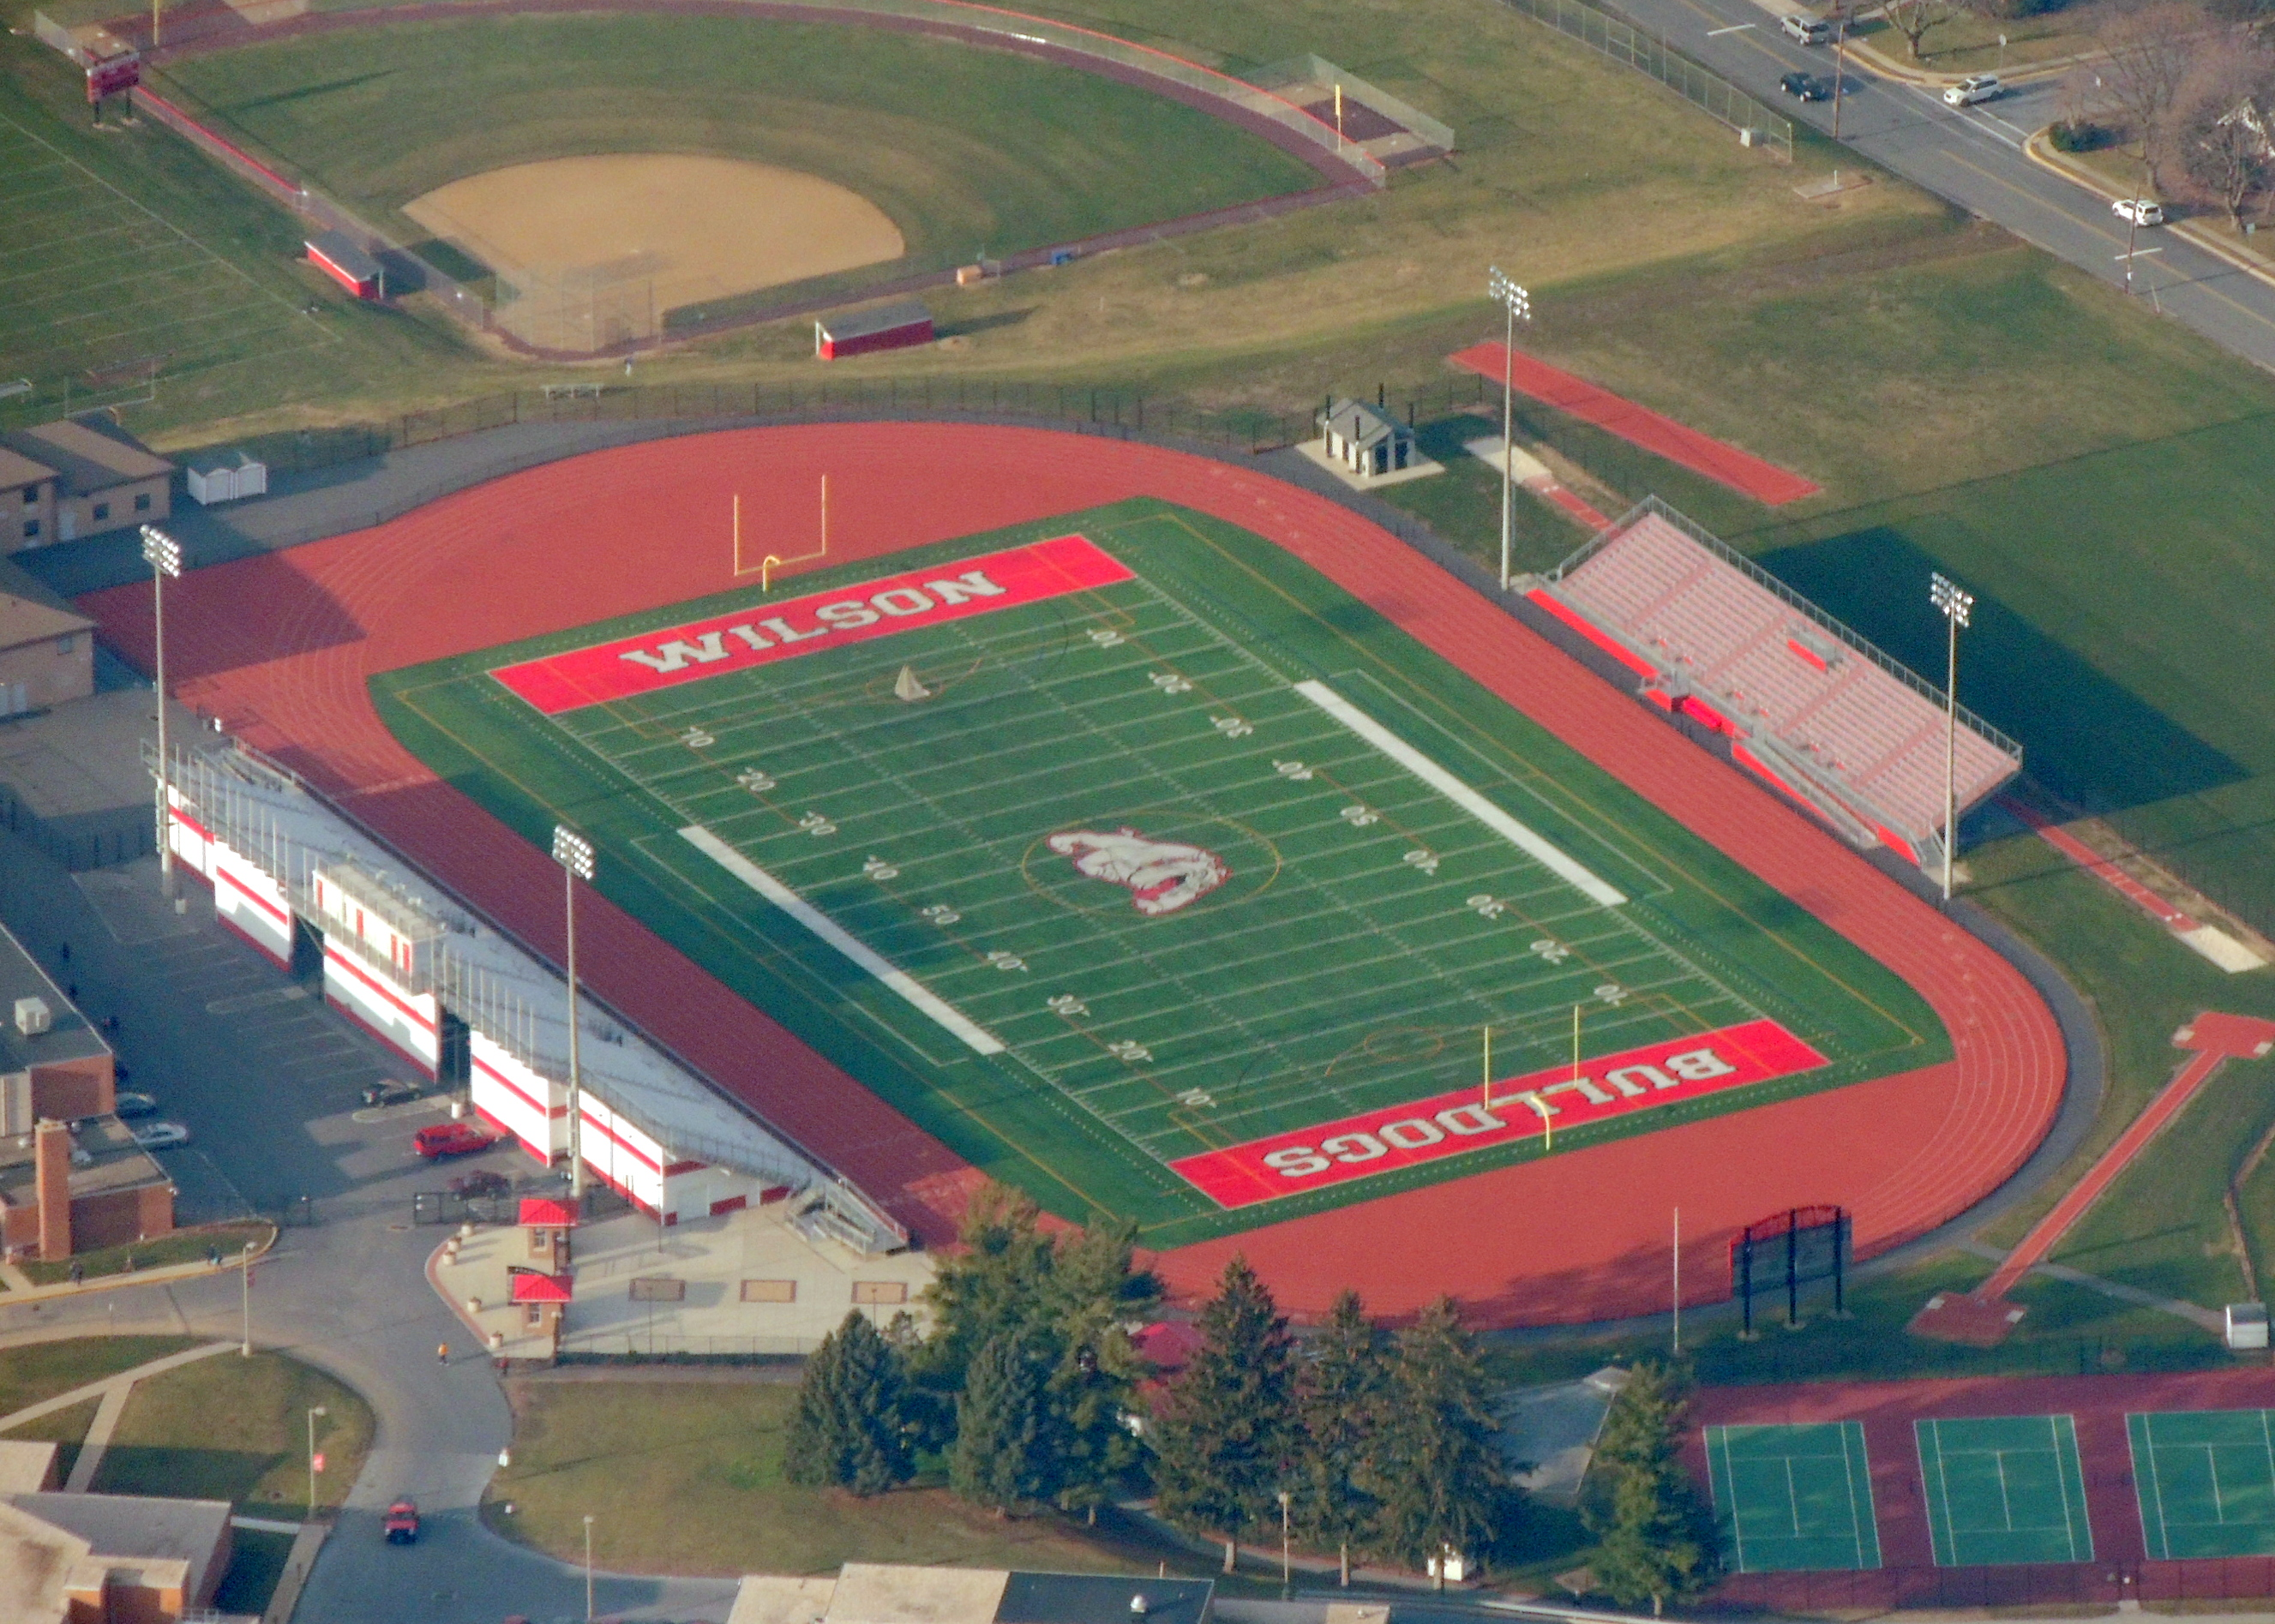 Wilson High School (Wilson Bulldogs) West Lawn PA